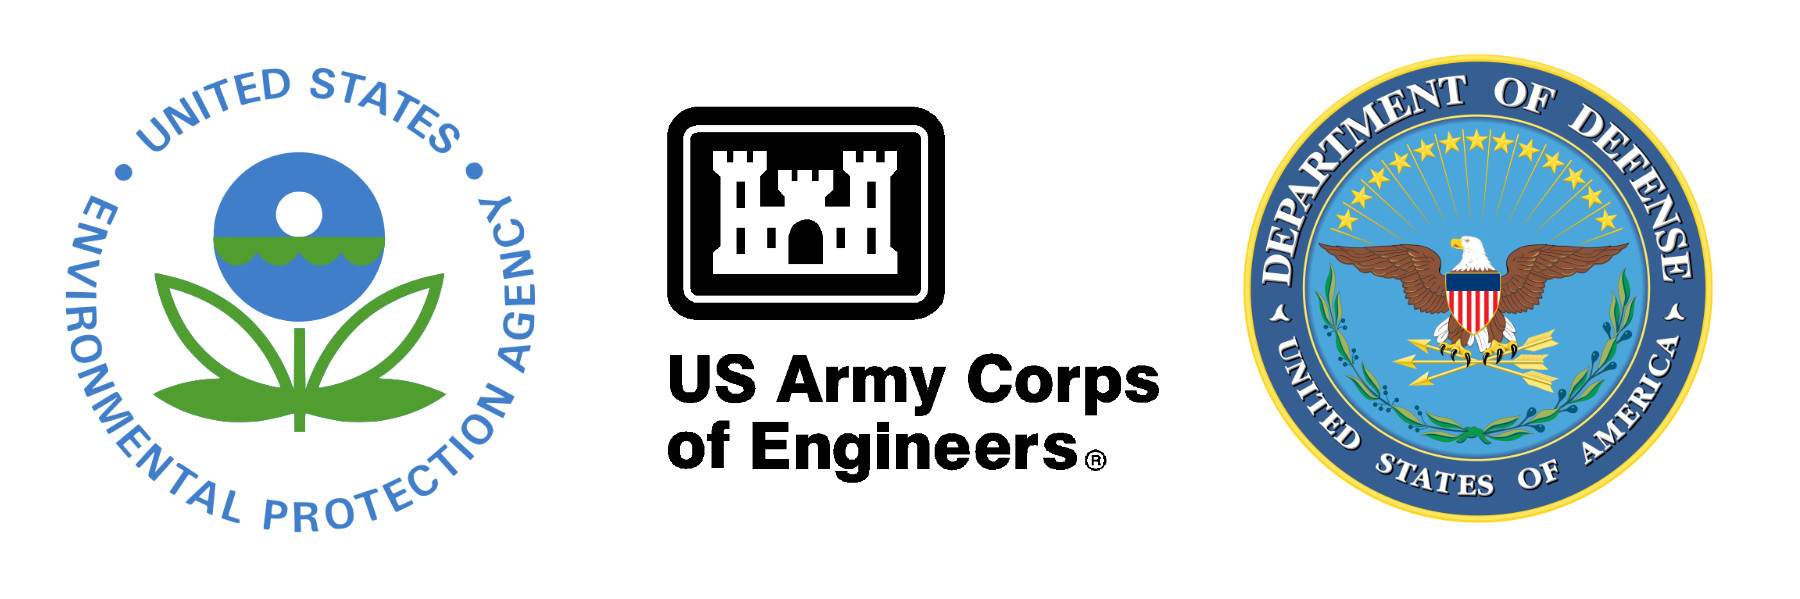 U.S. Federal Qualifications - Environmental Protection Agency, Army Corps of Engineers, Department of Defense